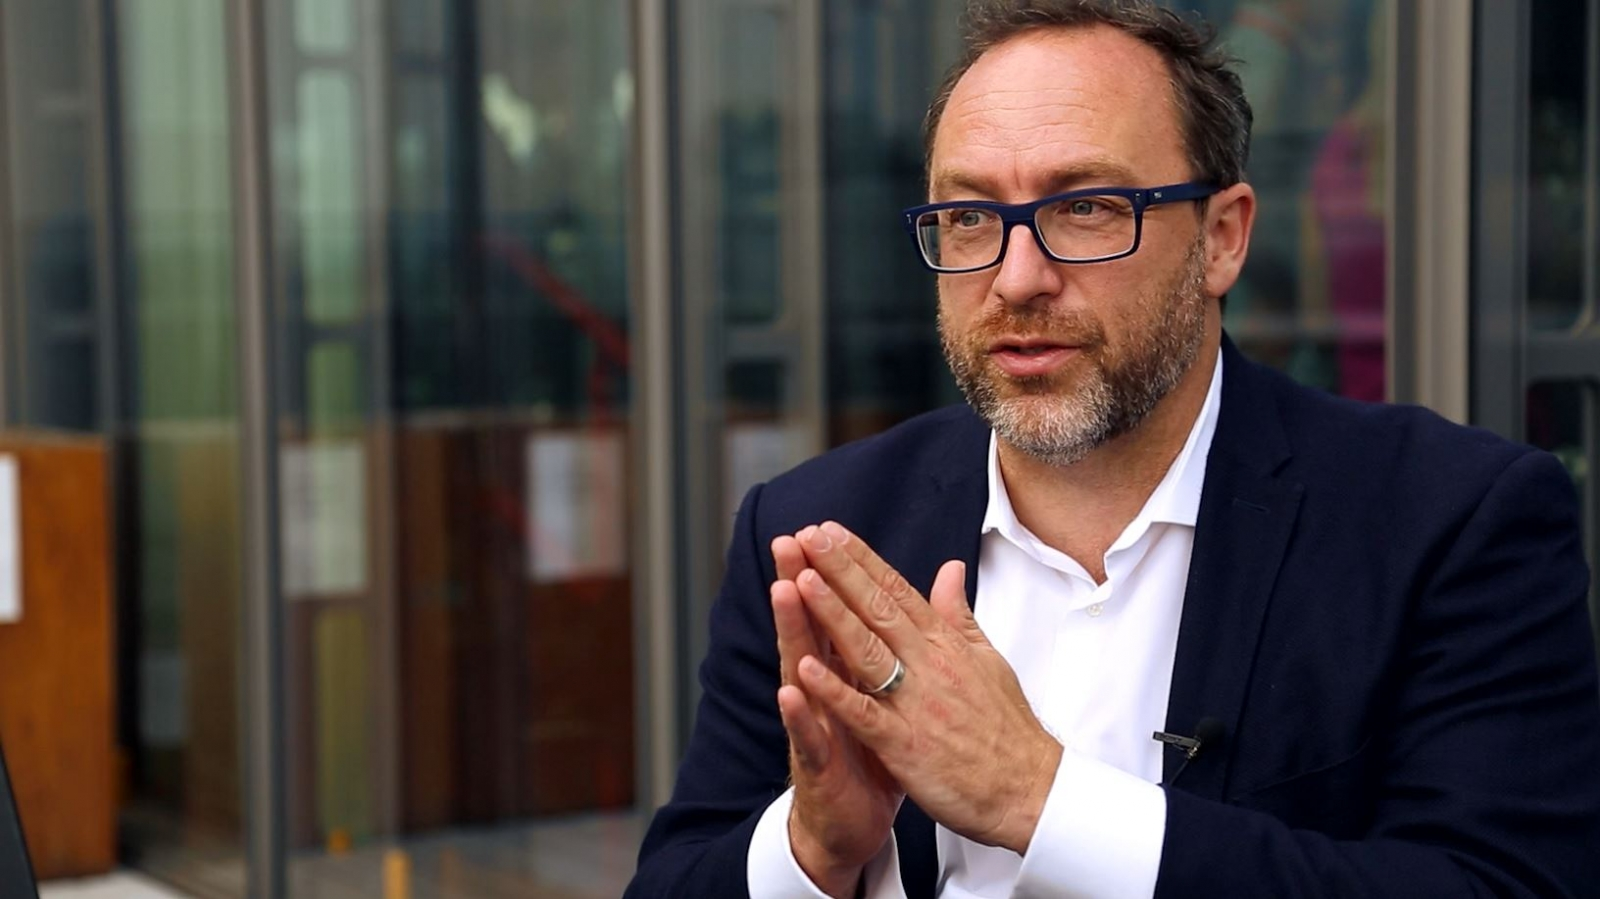 Jimmy Wales: Google Should Not Be 'The Arbiter of History'